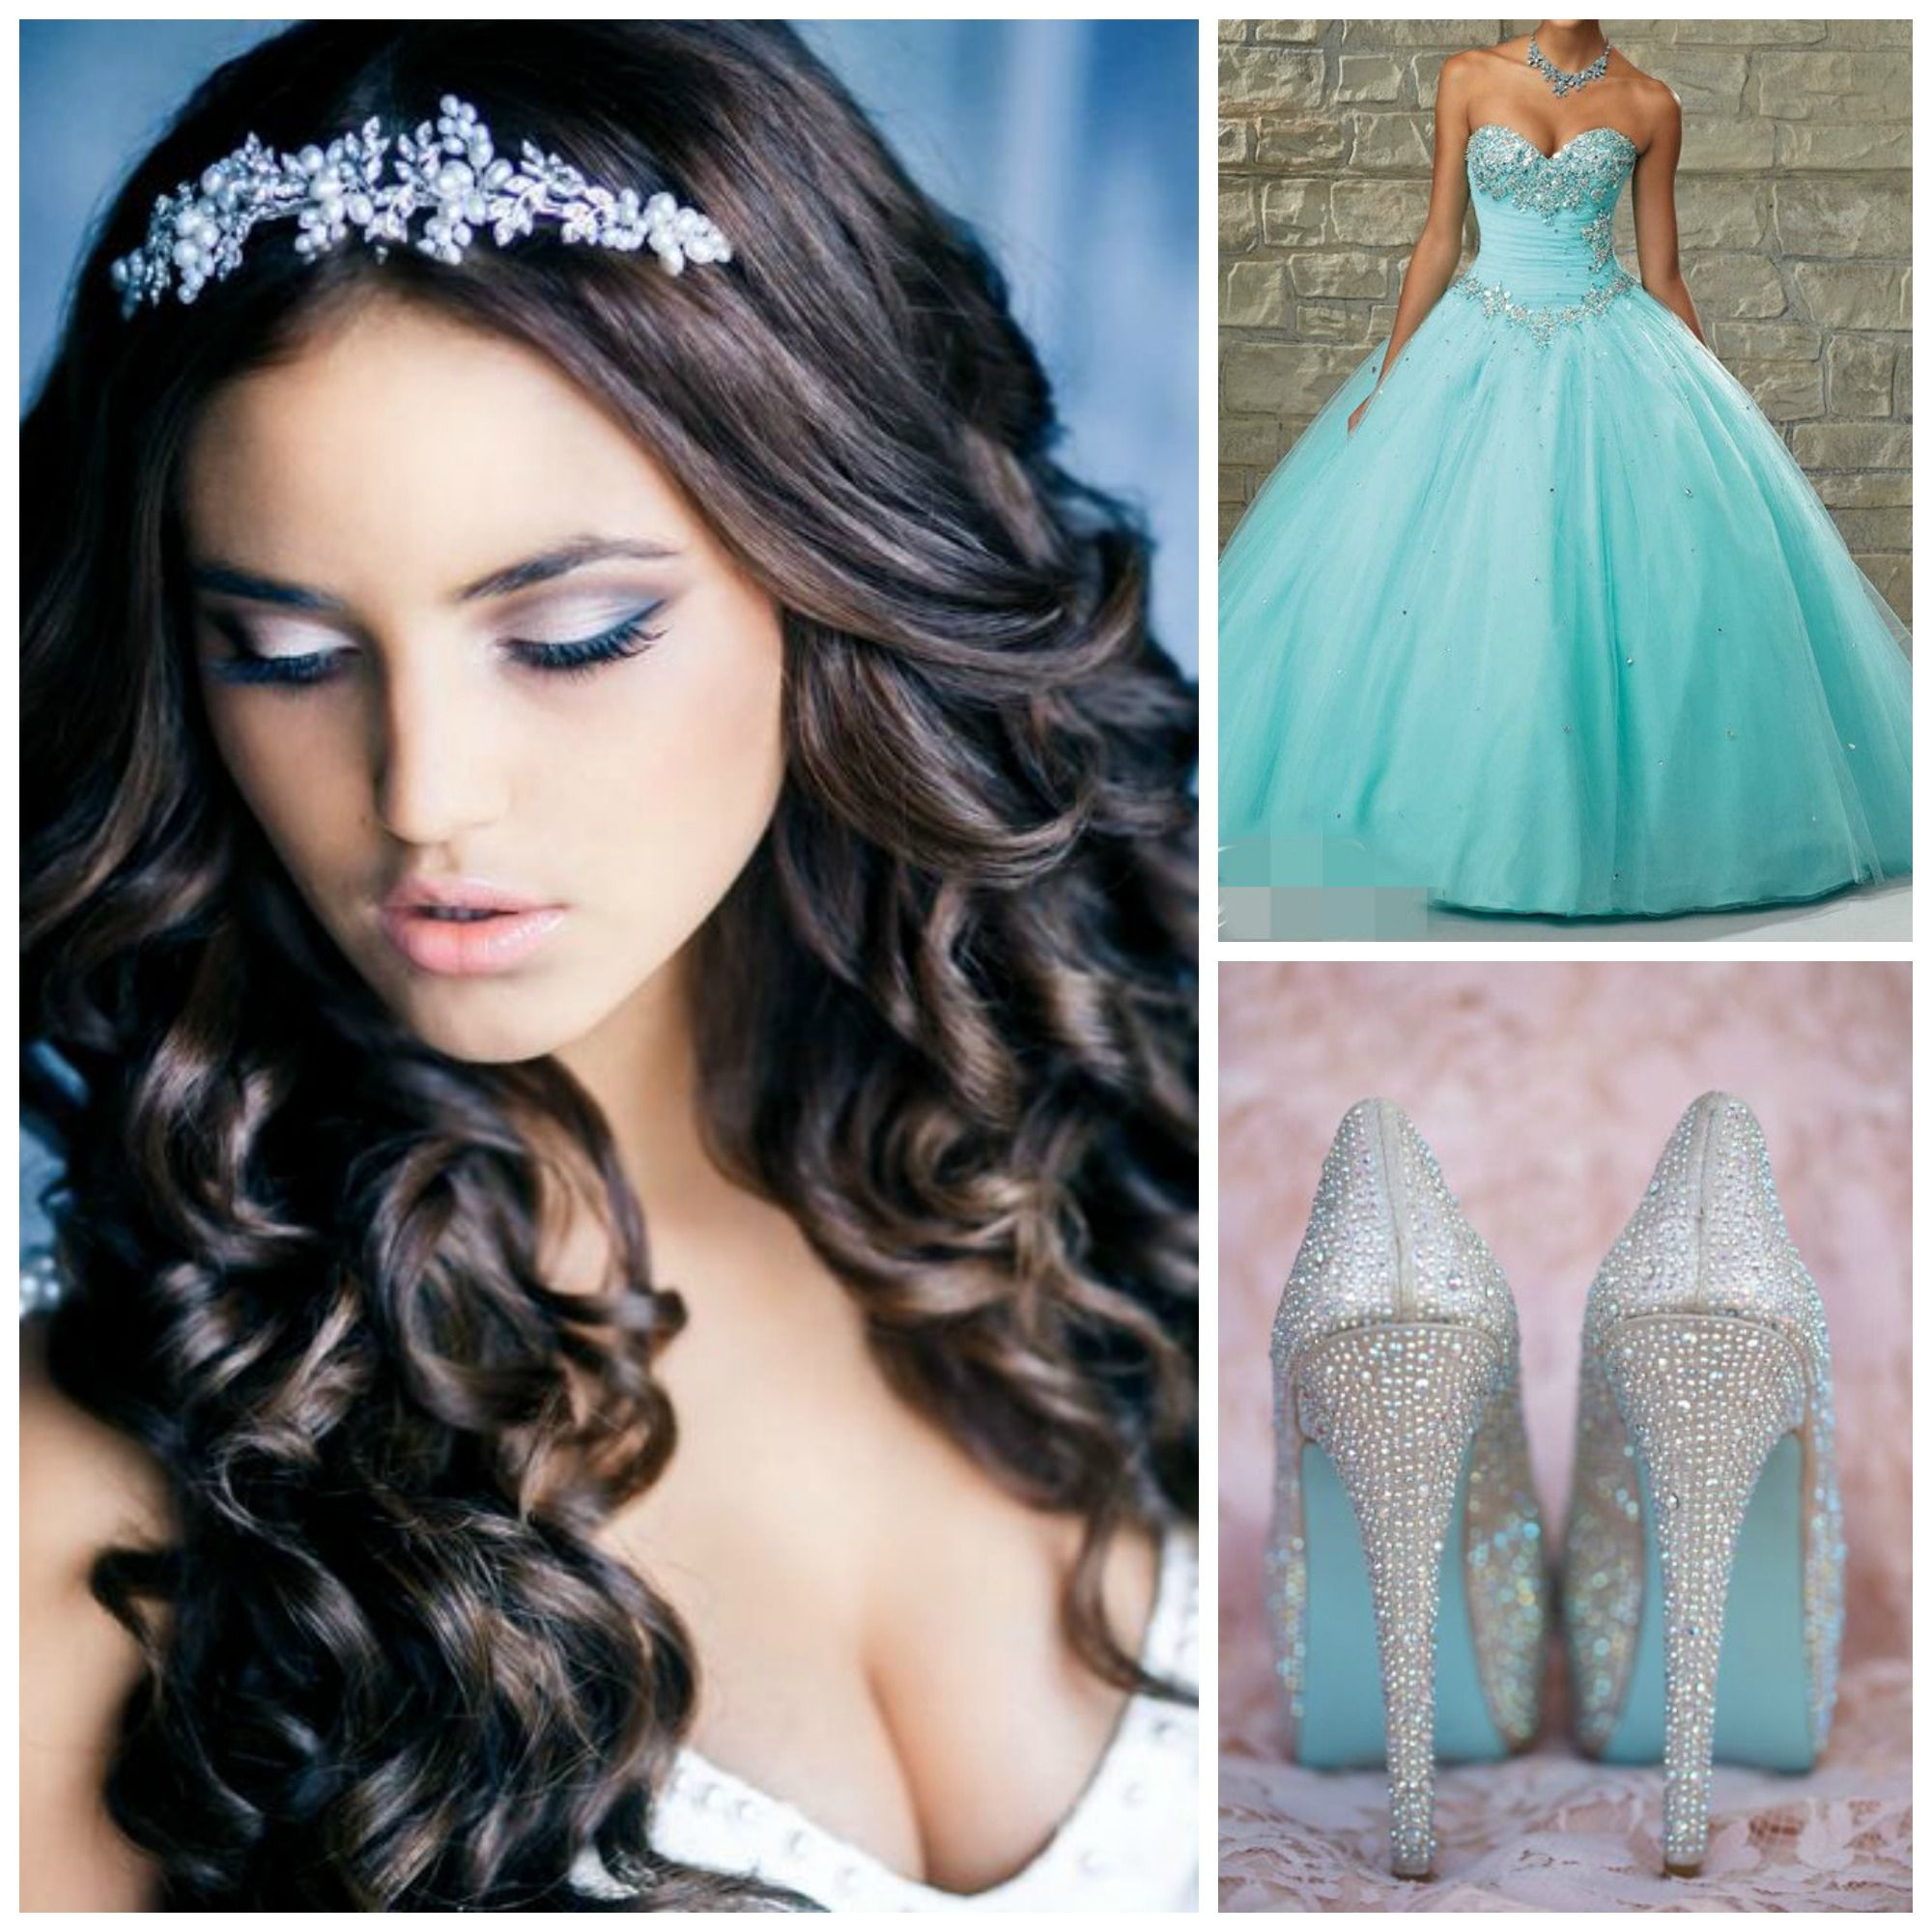 Hairstyles For A Quinceanera Quinceanera Hairstyle Quinceanera Pinterest Tiaras My Name